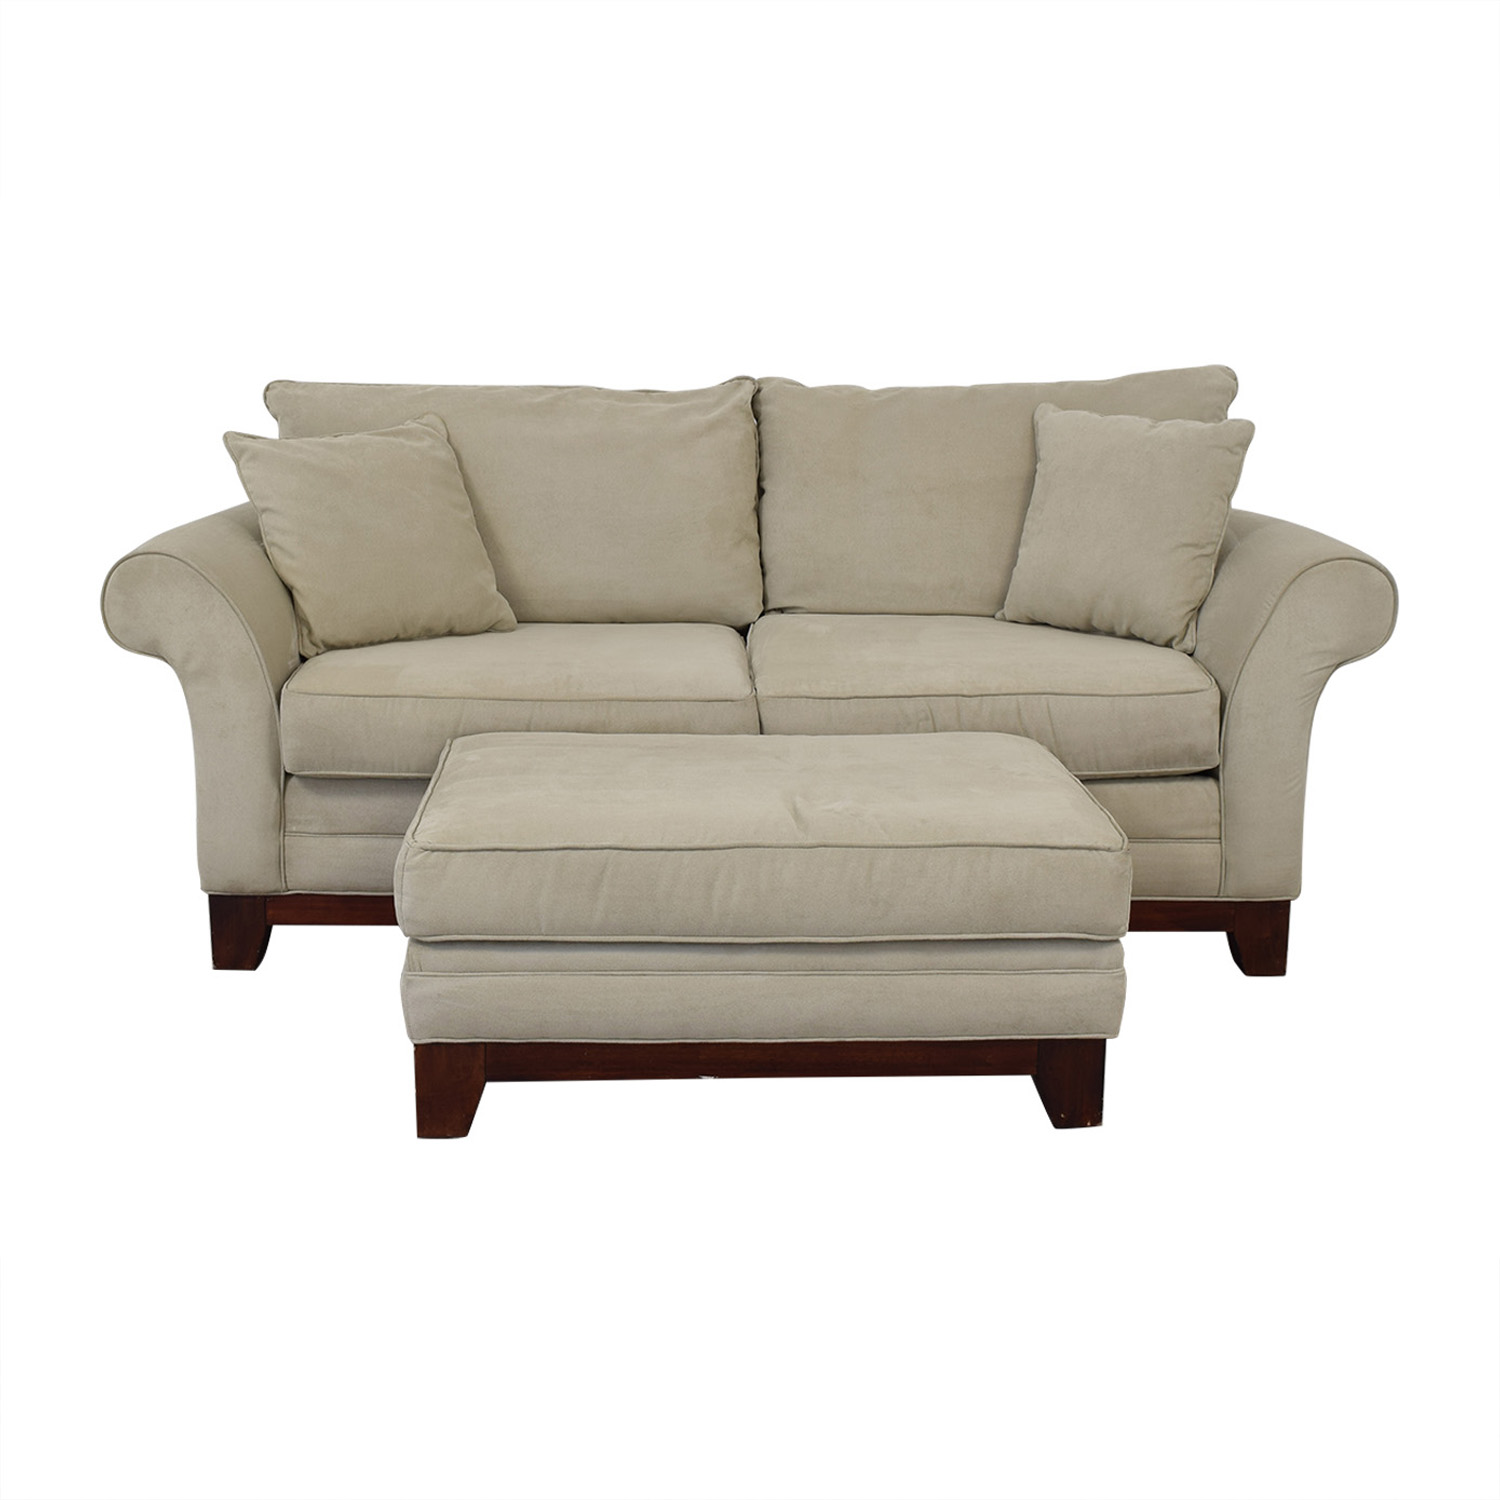 Craftmaster Furniture Microsuede Couch And Ottoman Price